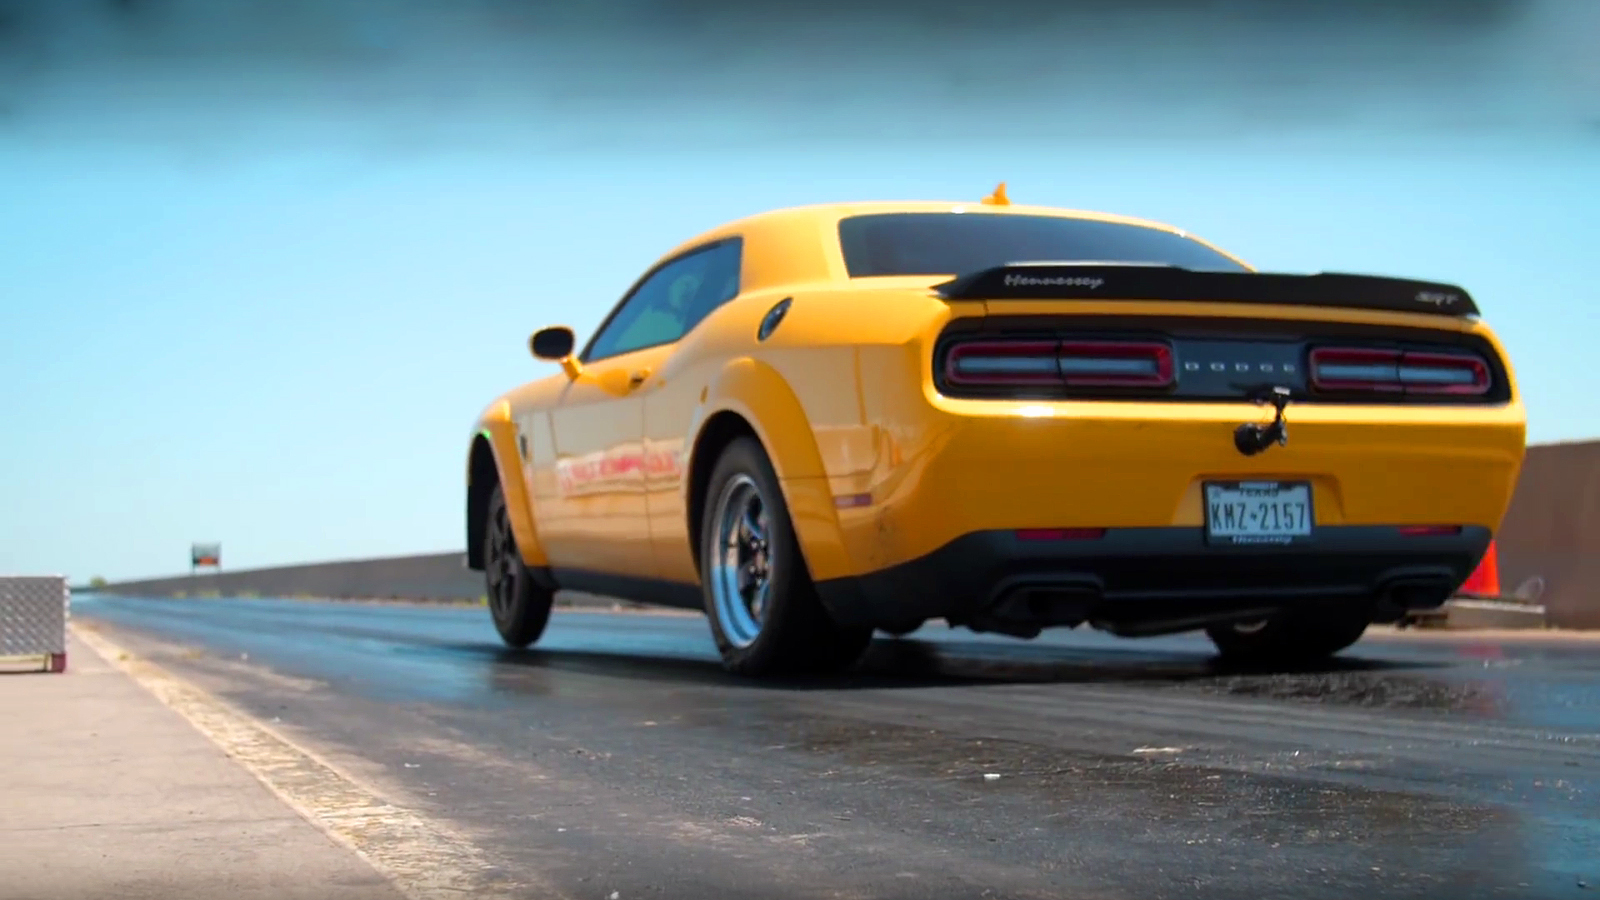 1000 Horsepower Hennessey Demon - The Fastest 1/4 Mile Demon Ever!